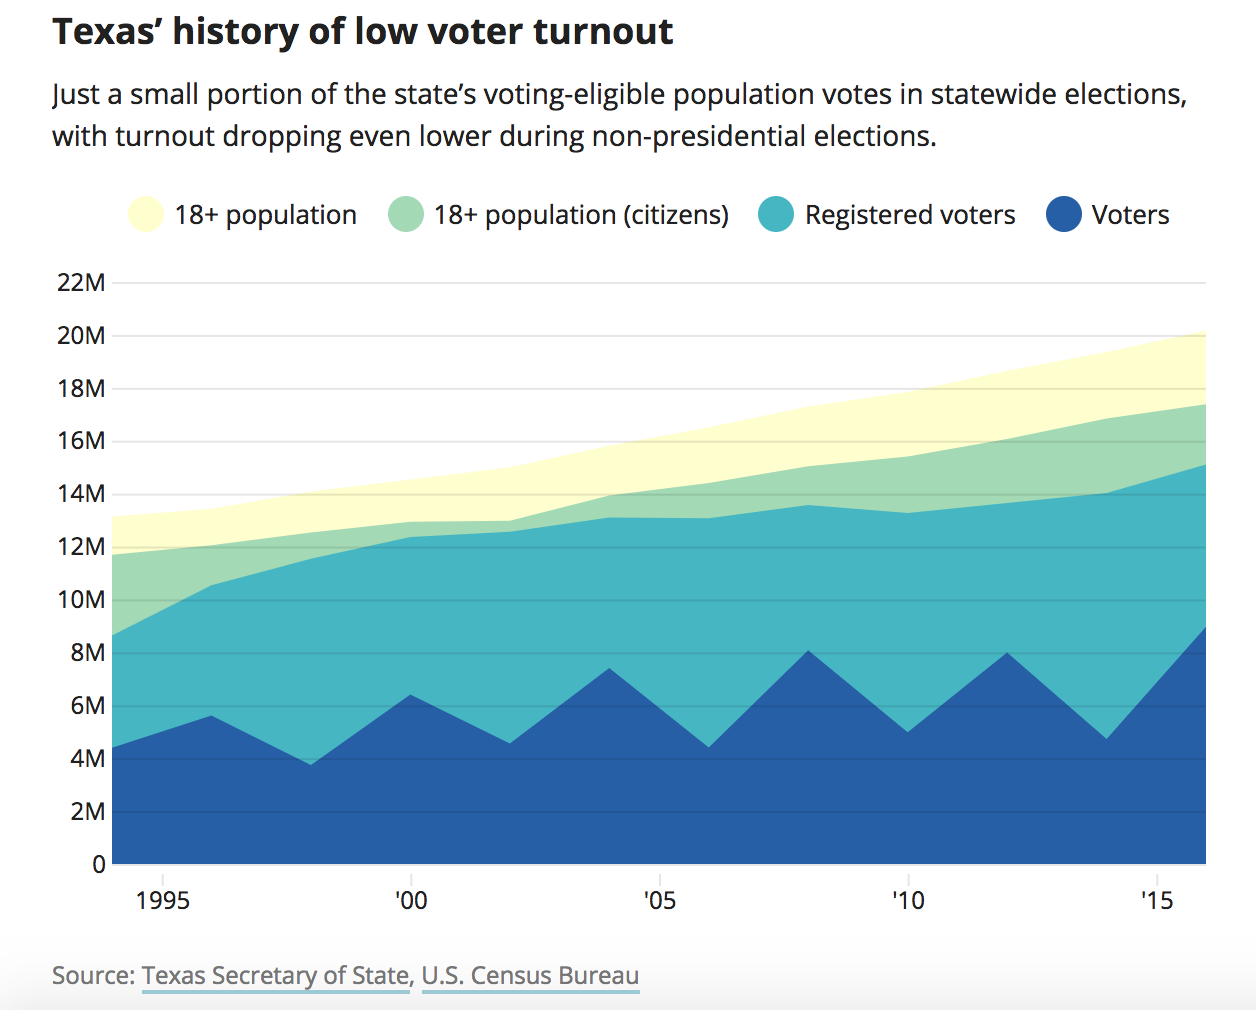 Why Is Voter Turnout So Low in Texas?